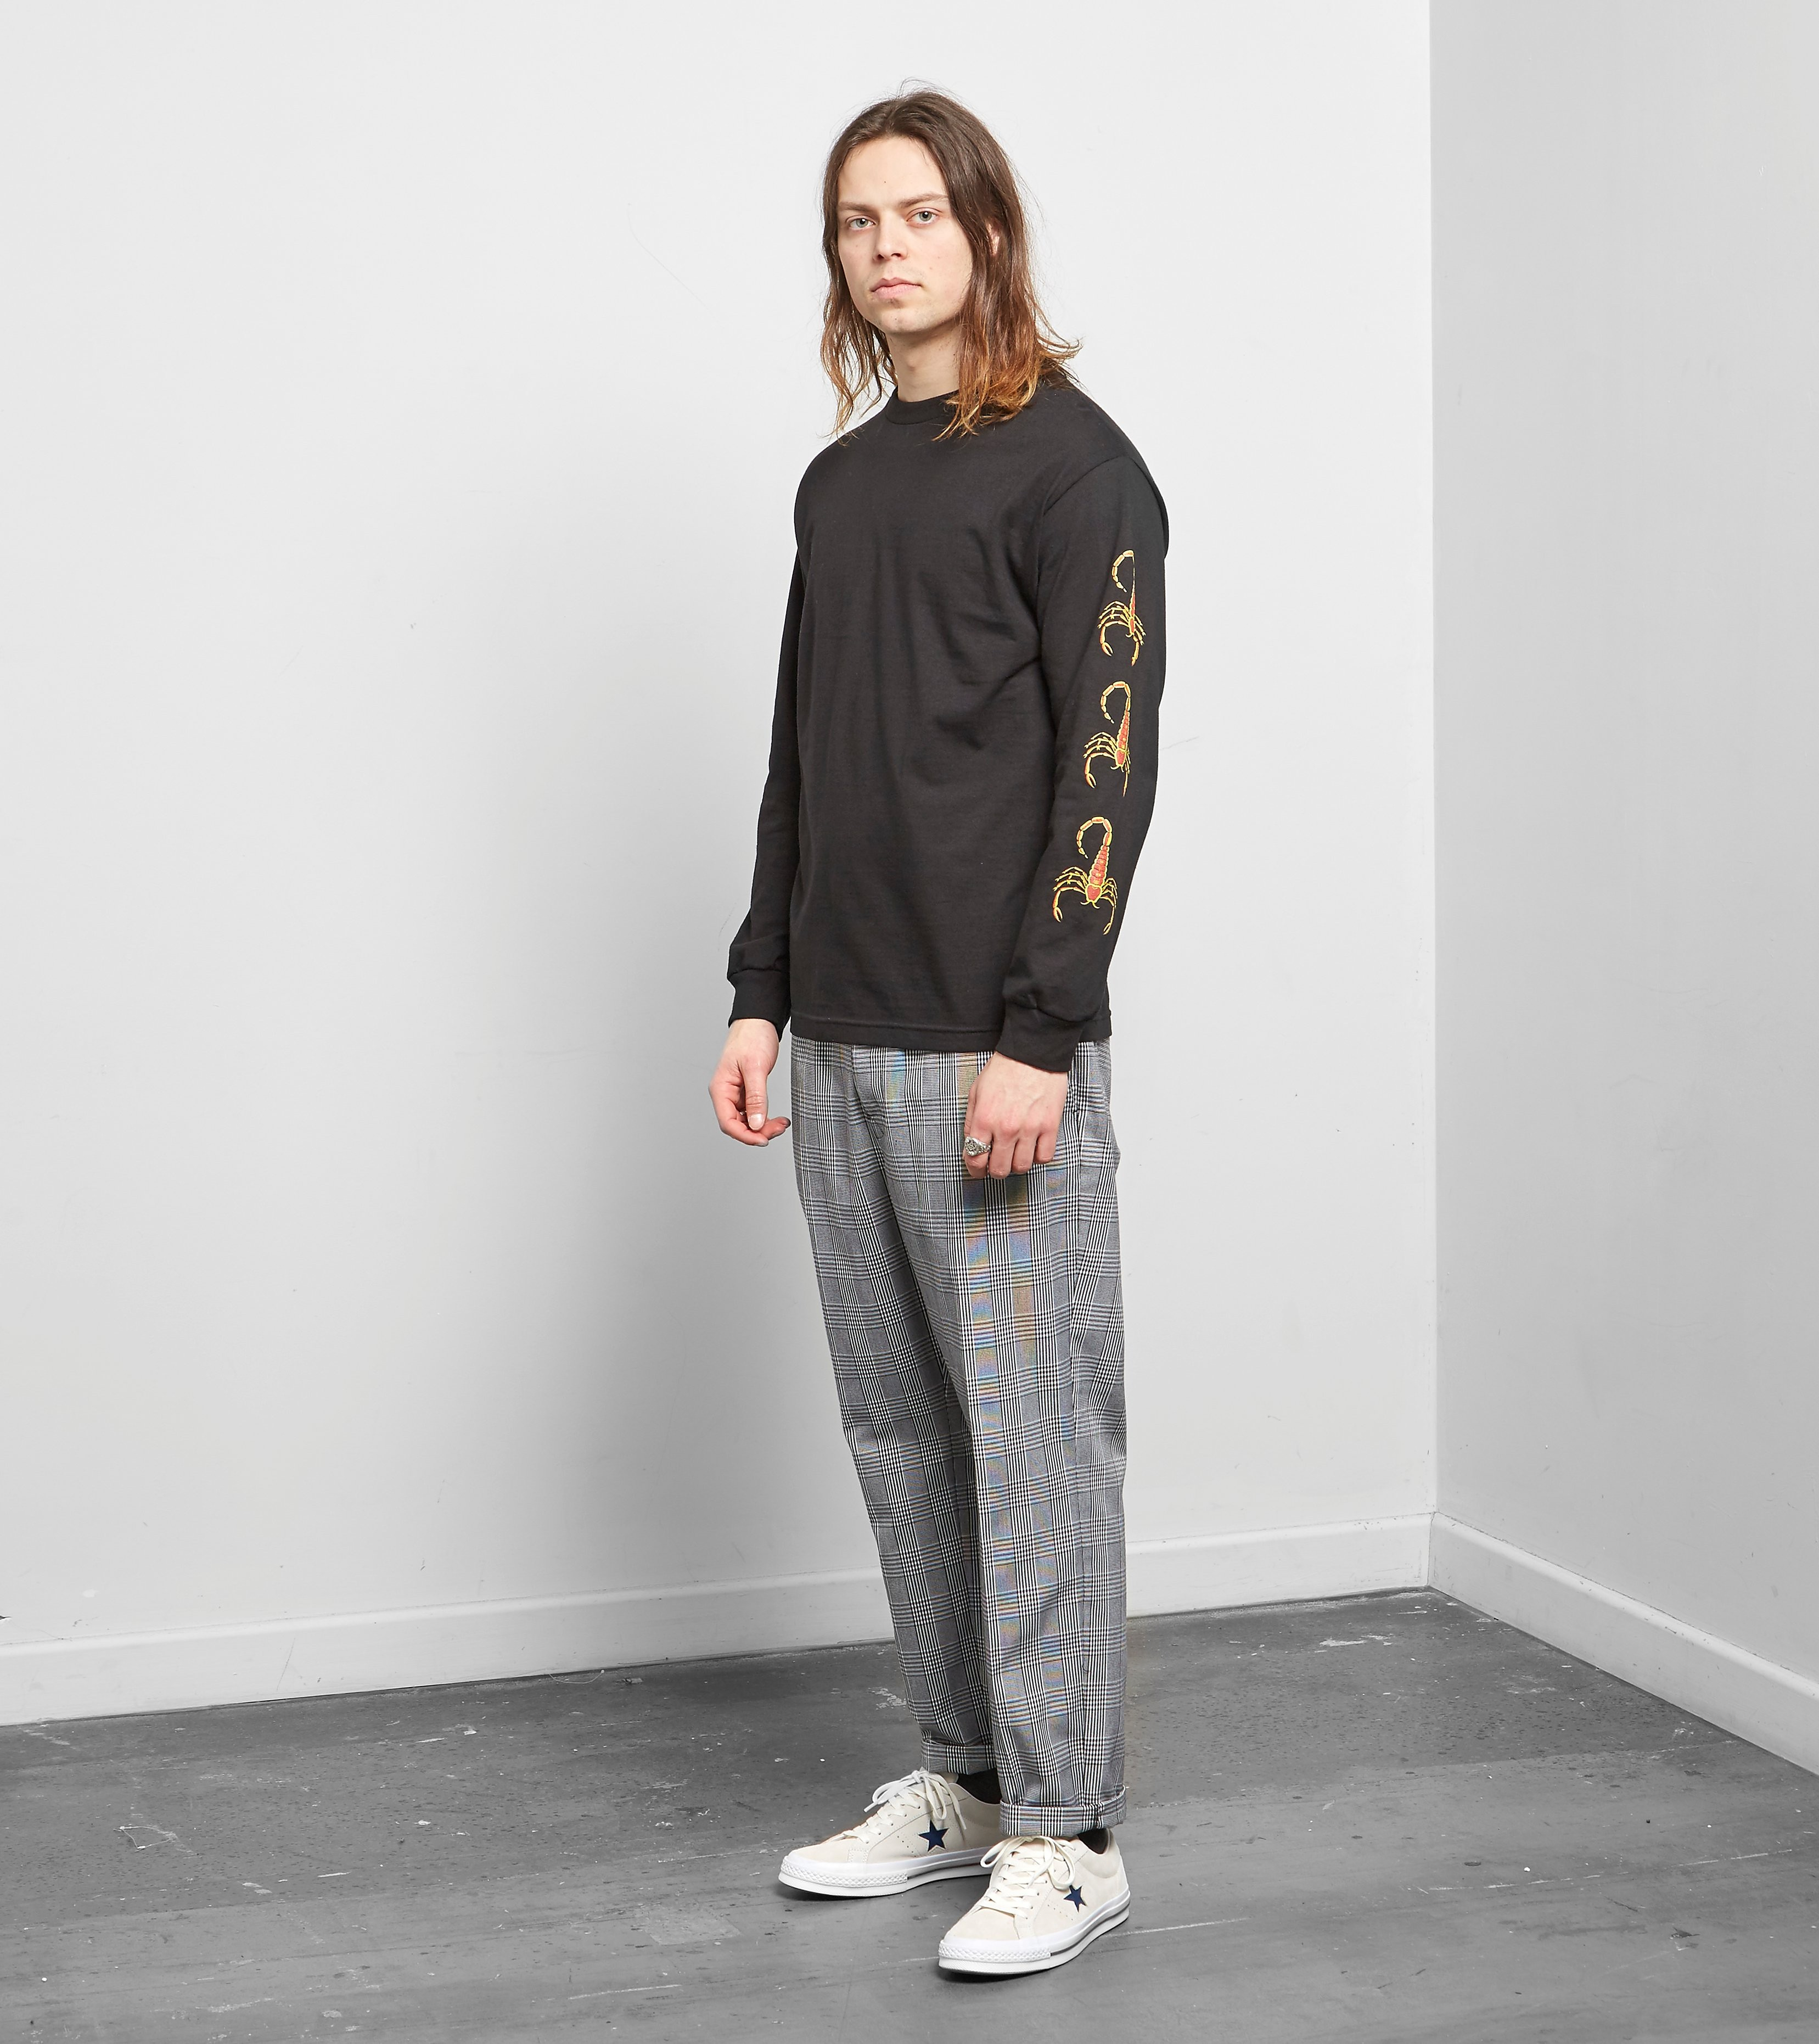 Good Worth & Co Scorpion Long Sleeved T-Shirt